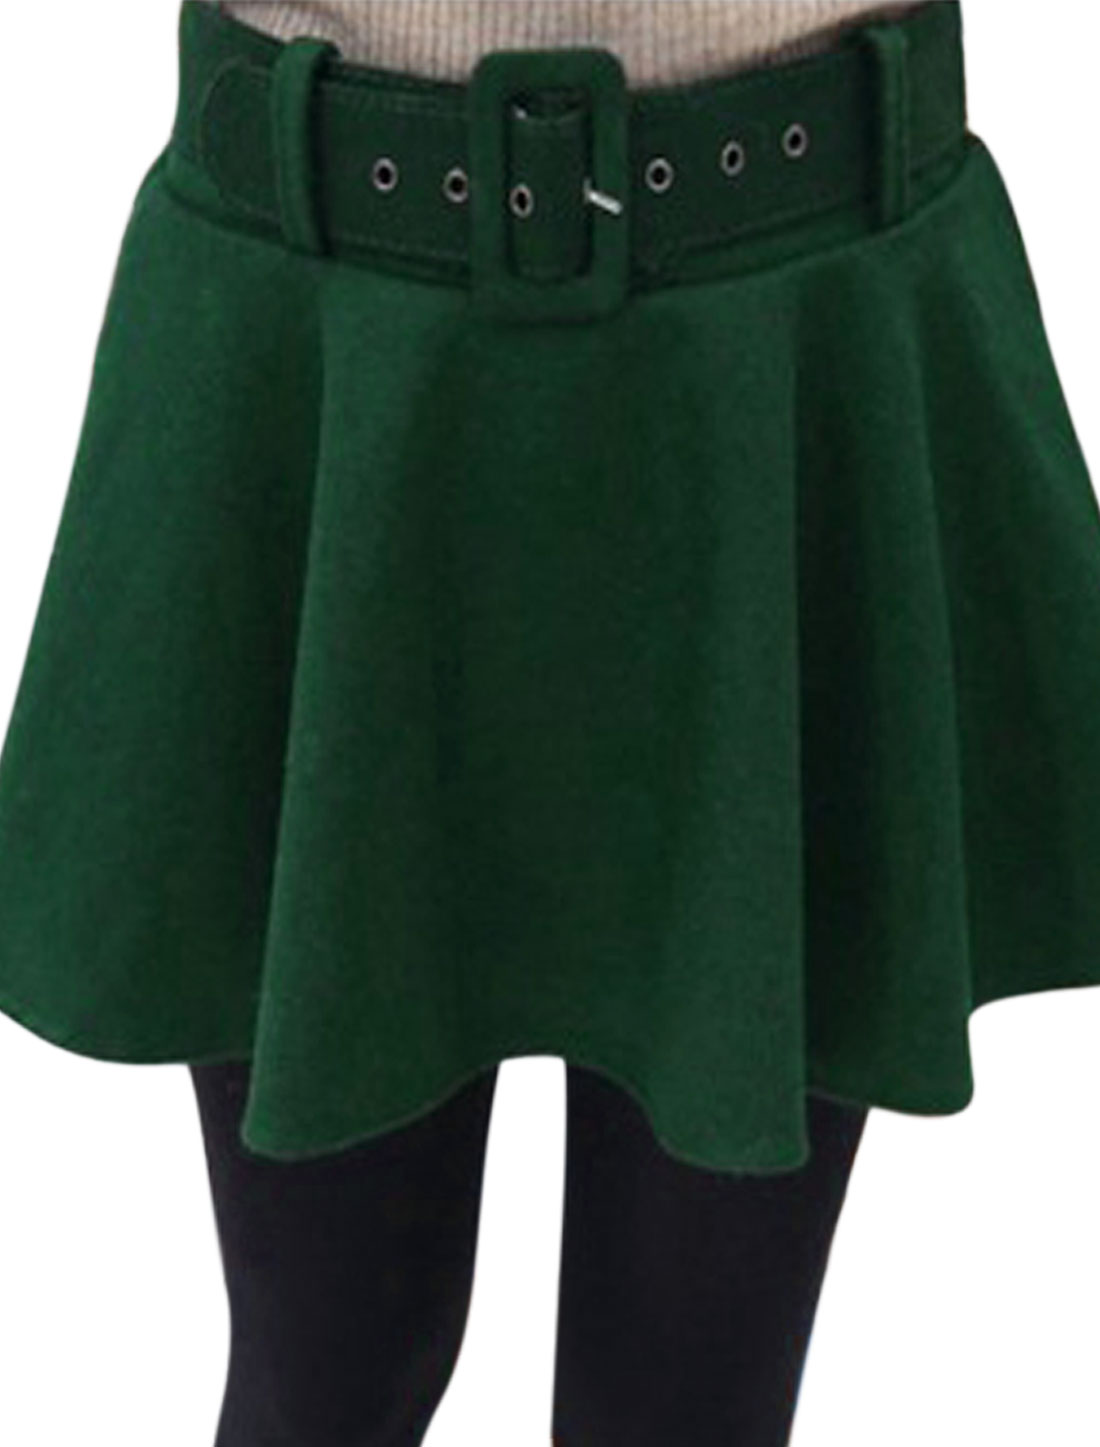 Women Elastic Waist Full Lined Worsted Skirt w Belt Dusty Green S